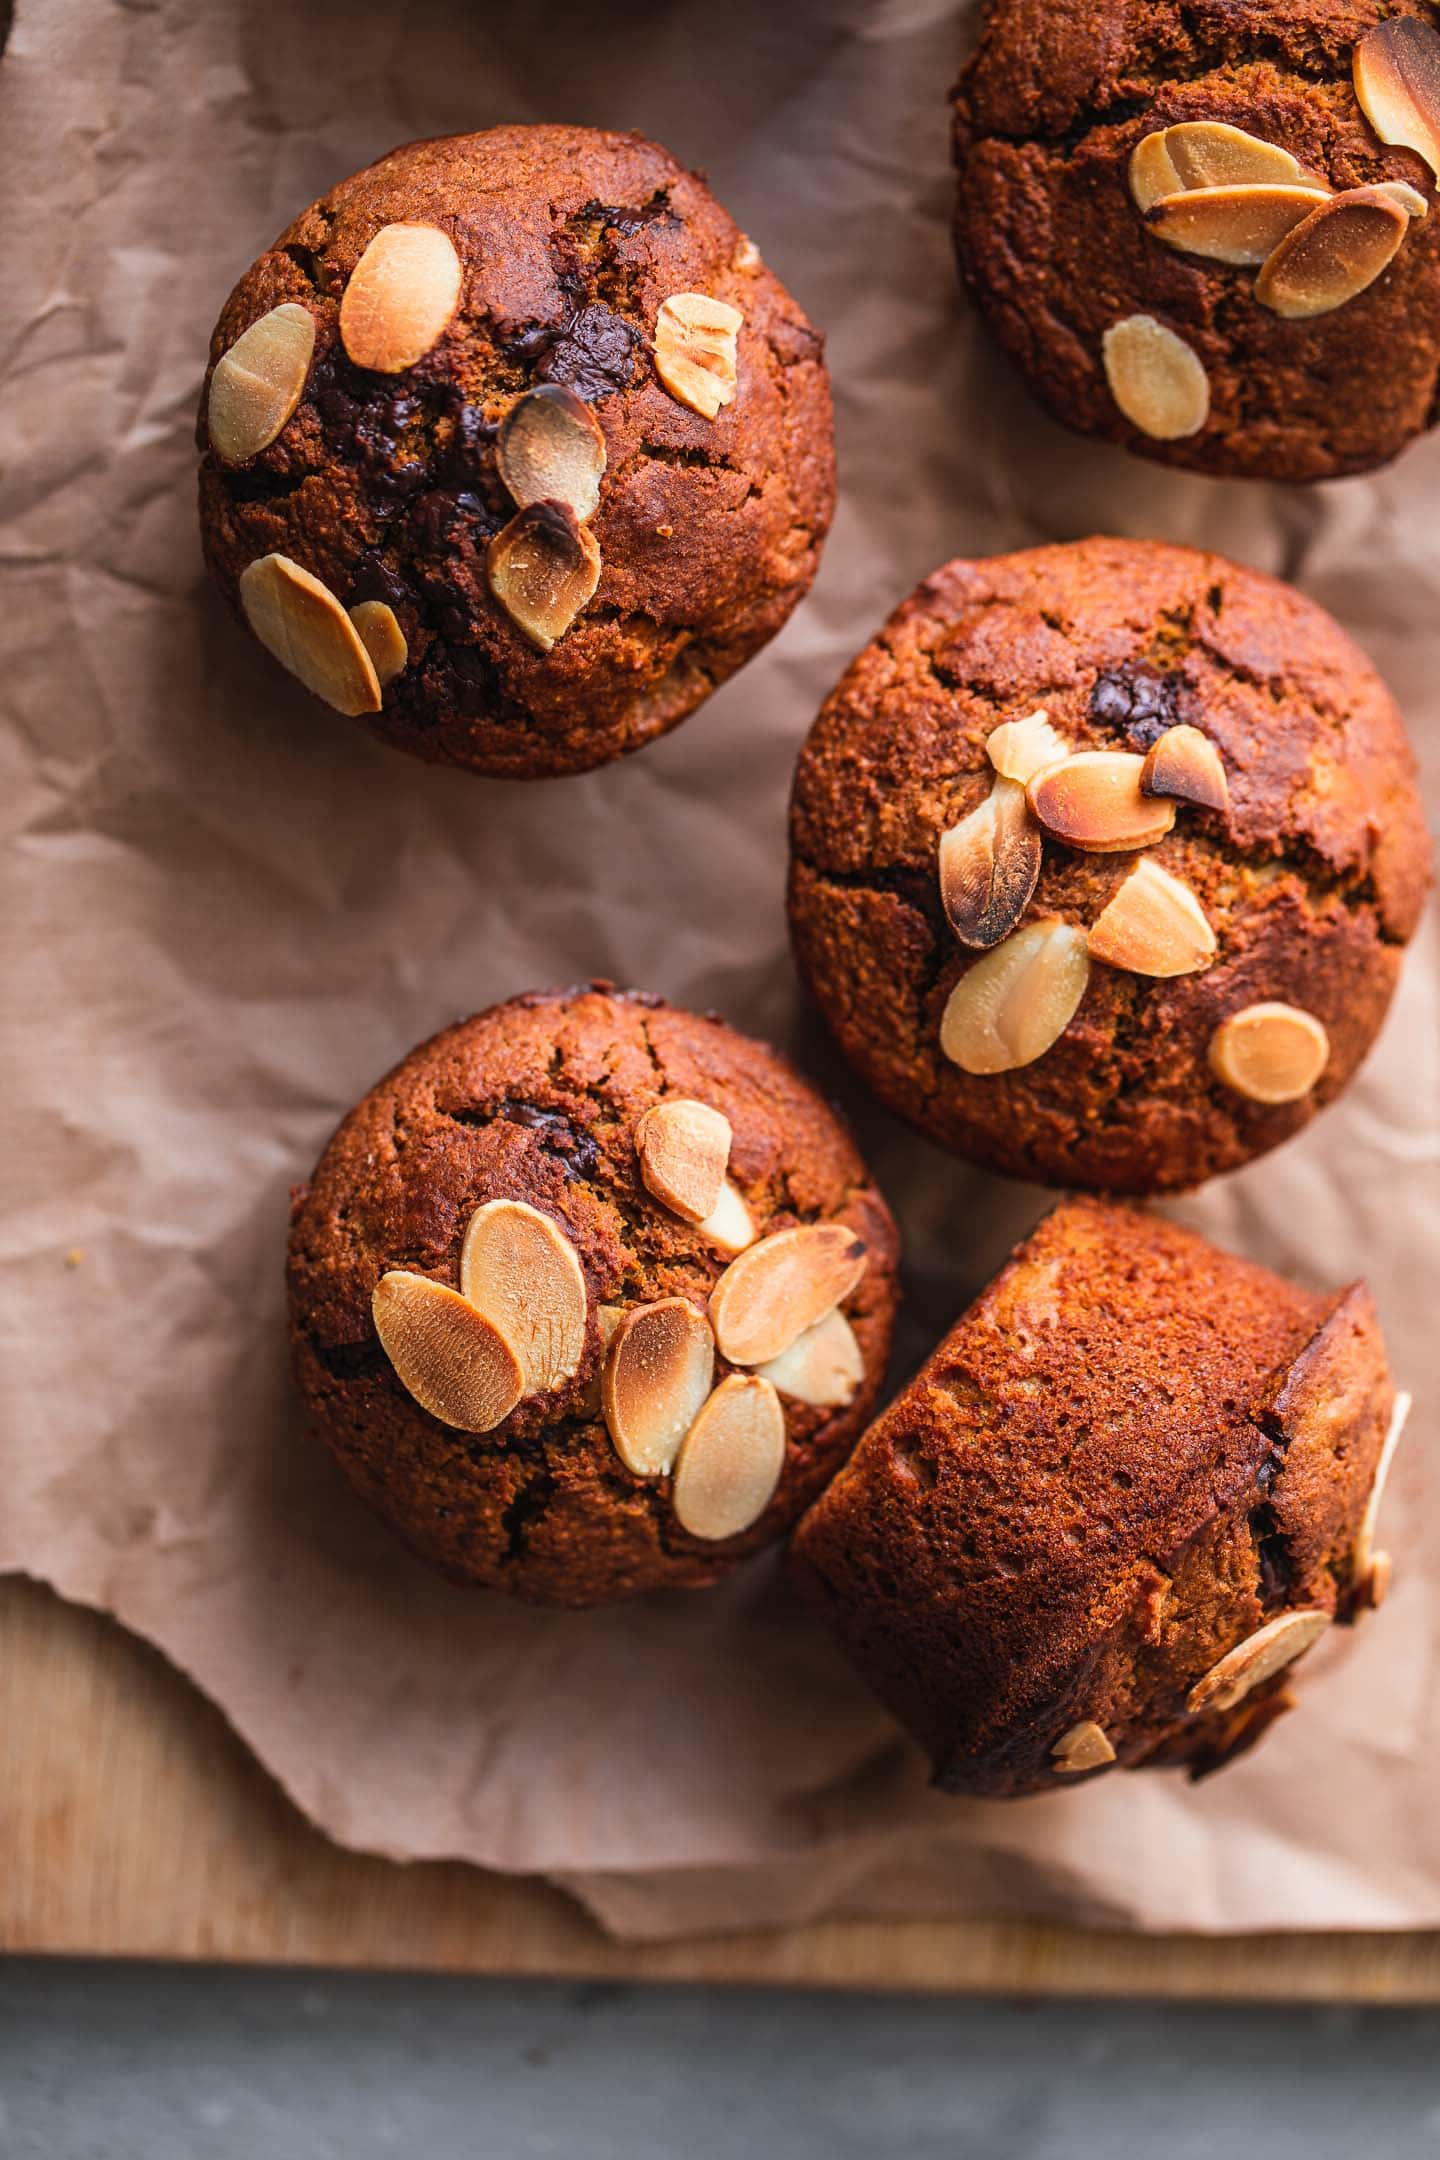 Closeup of muffins with almonds on a wooden board